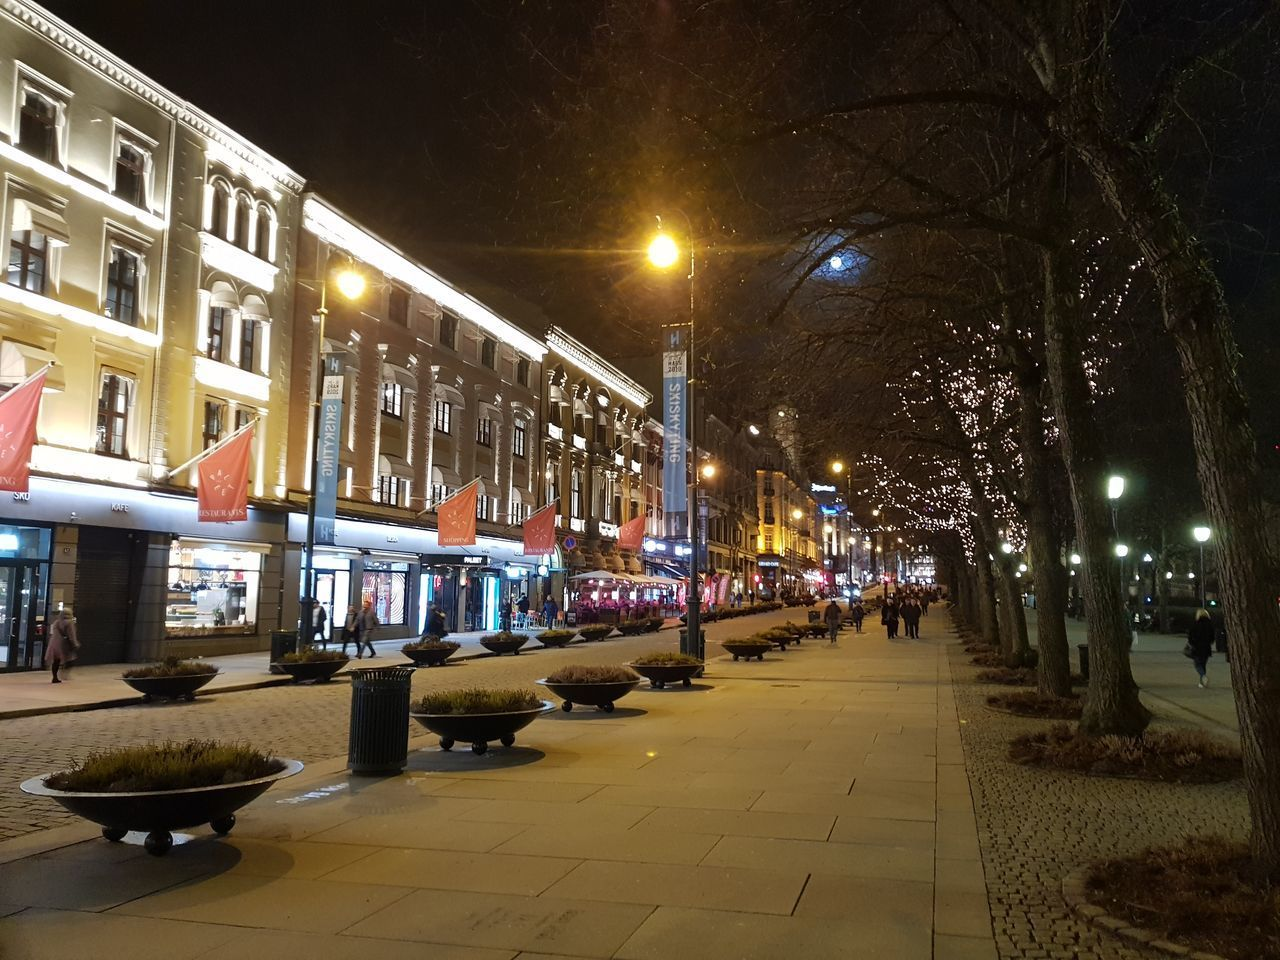 illuminated, night, architecture, built structure, building exterior, street, street light, city, lighting equipment, footpath, the way forward, direction, no people, transportation, building, nature, tree, outdoors, plant